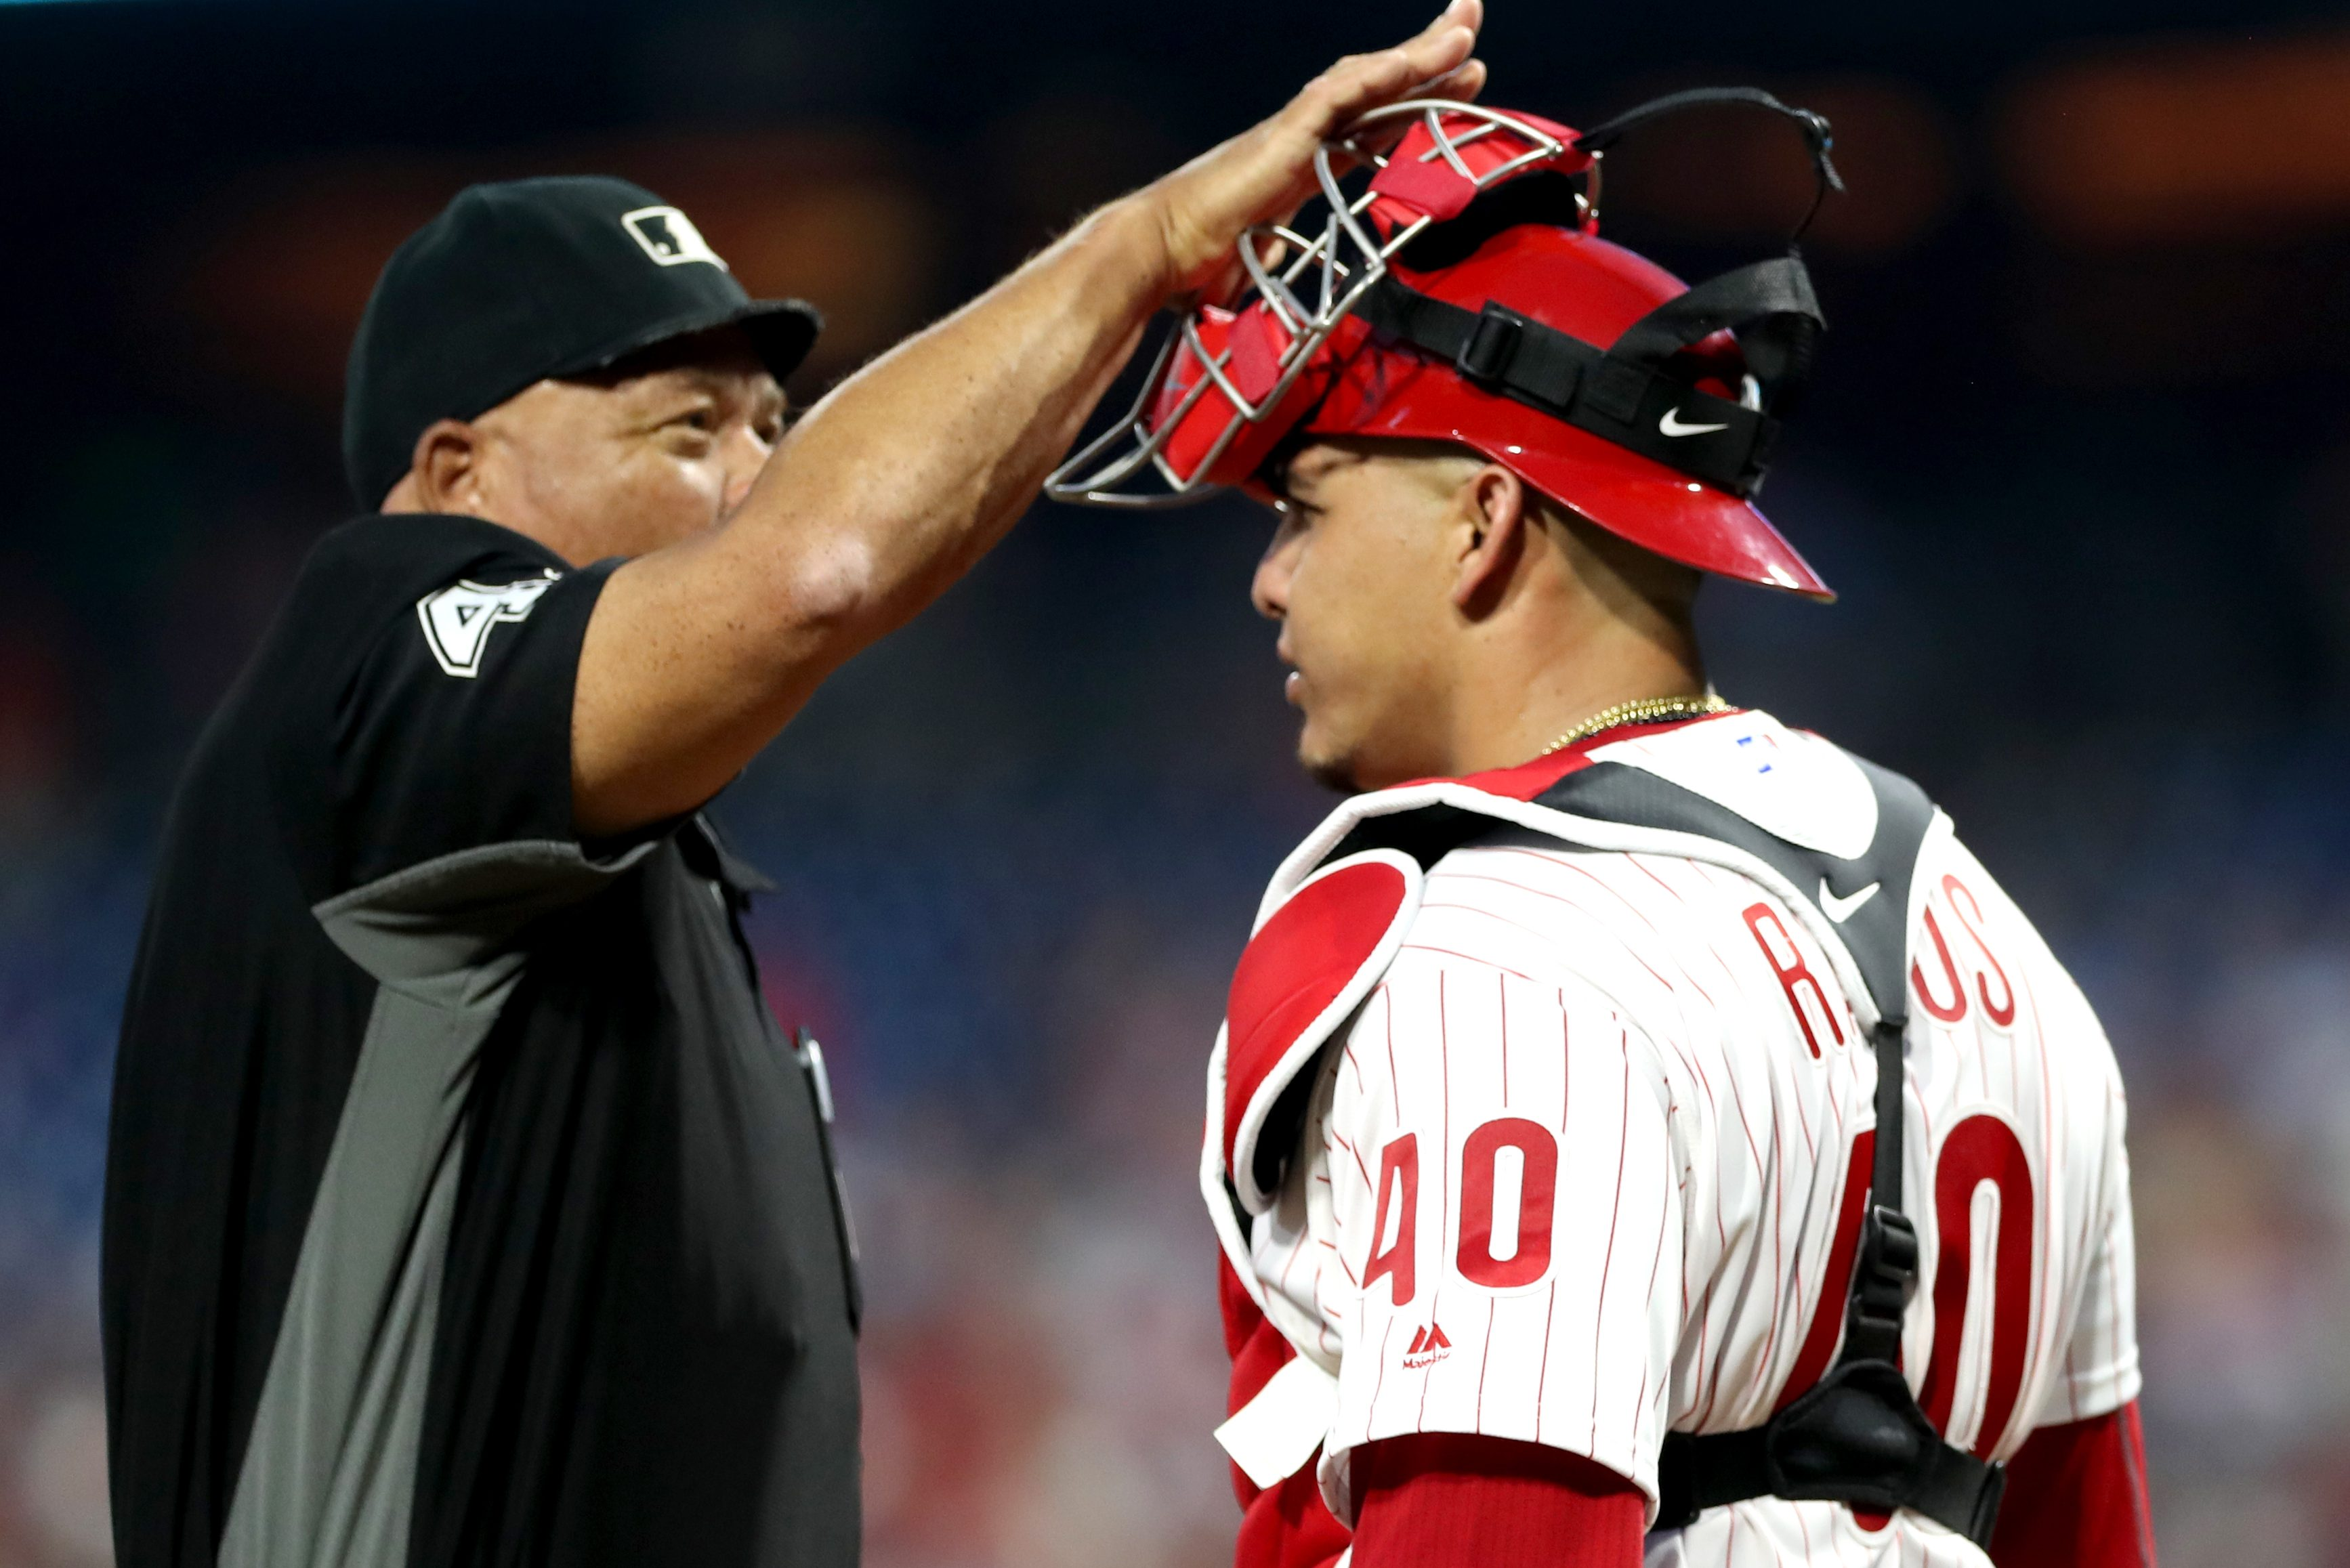 Home plate umpire Kerwin Danley, left, slaps Wilson Ramos of the Phillies on his catcher´s mask, showing where the umpire was hit during the Phillies´ 7-4 win over the Red Sox on Wednesday.